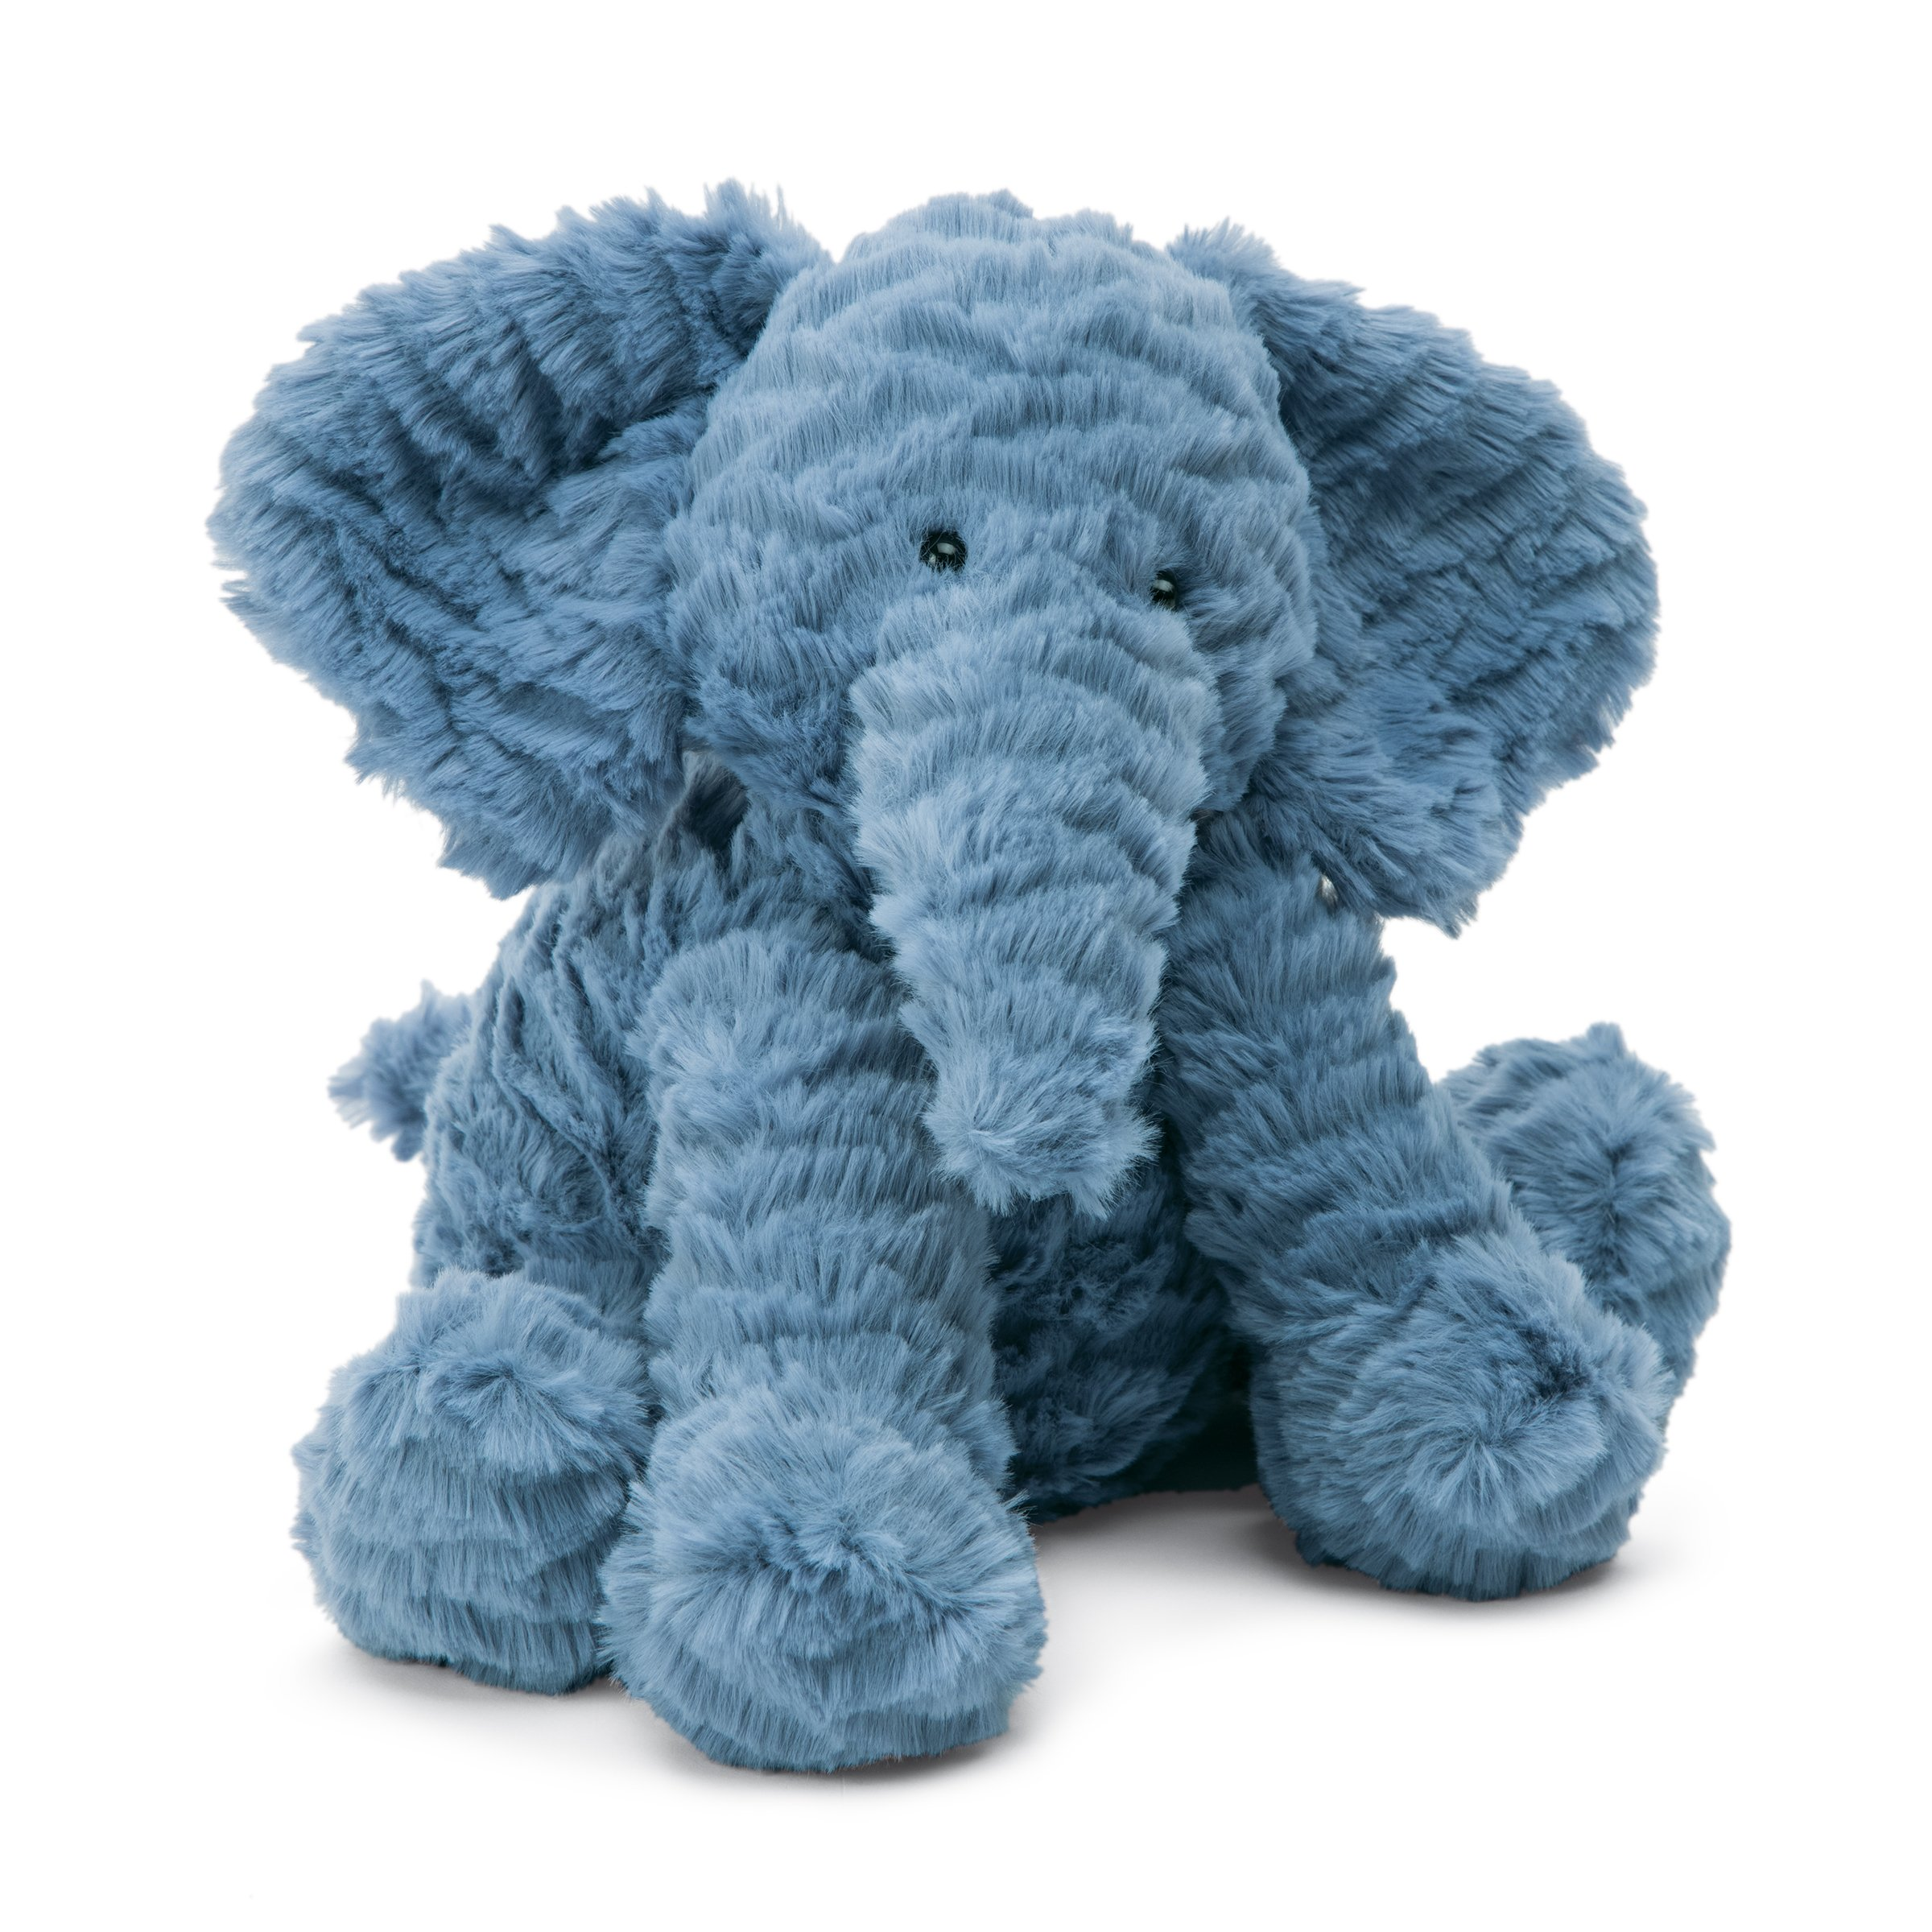 Jellycat Fuddlewuddle Elephant Stuffed Animal, Medium, 9 inches by Jellycat